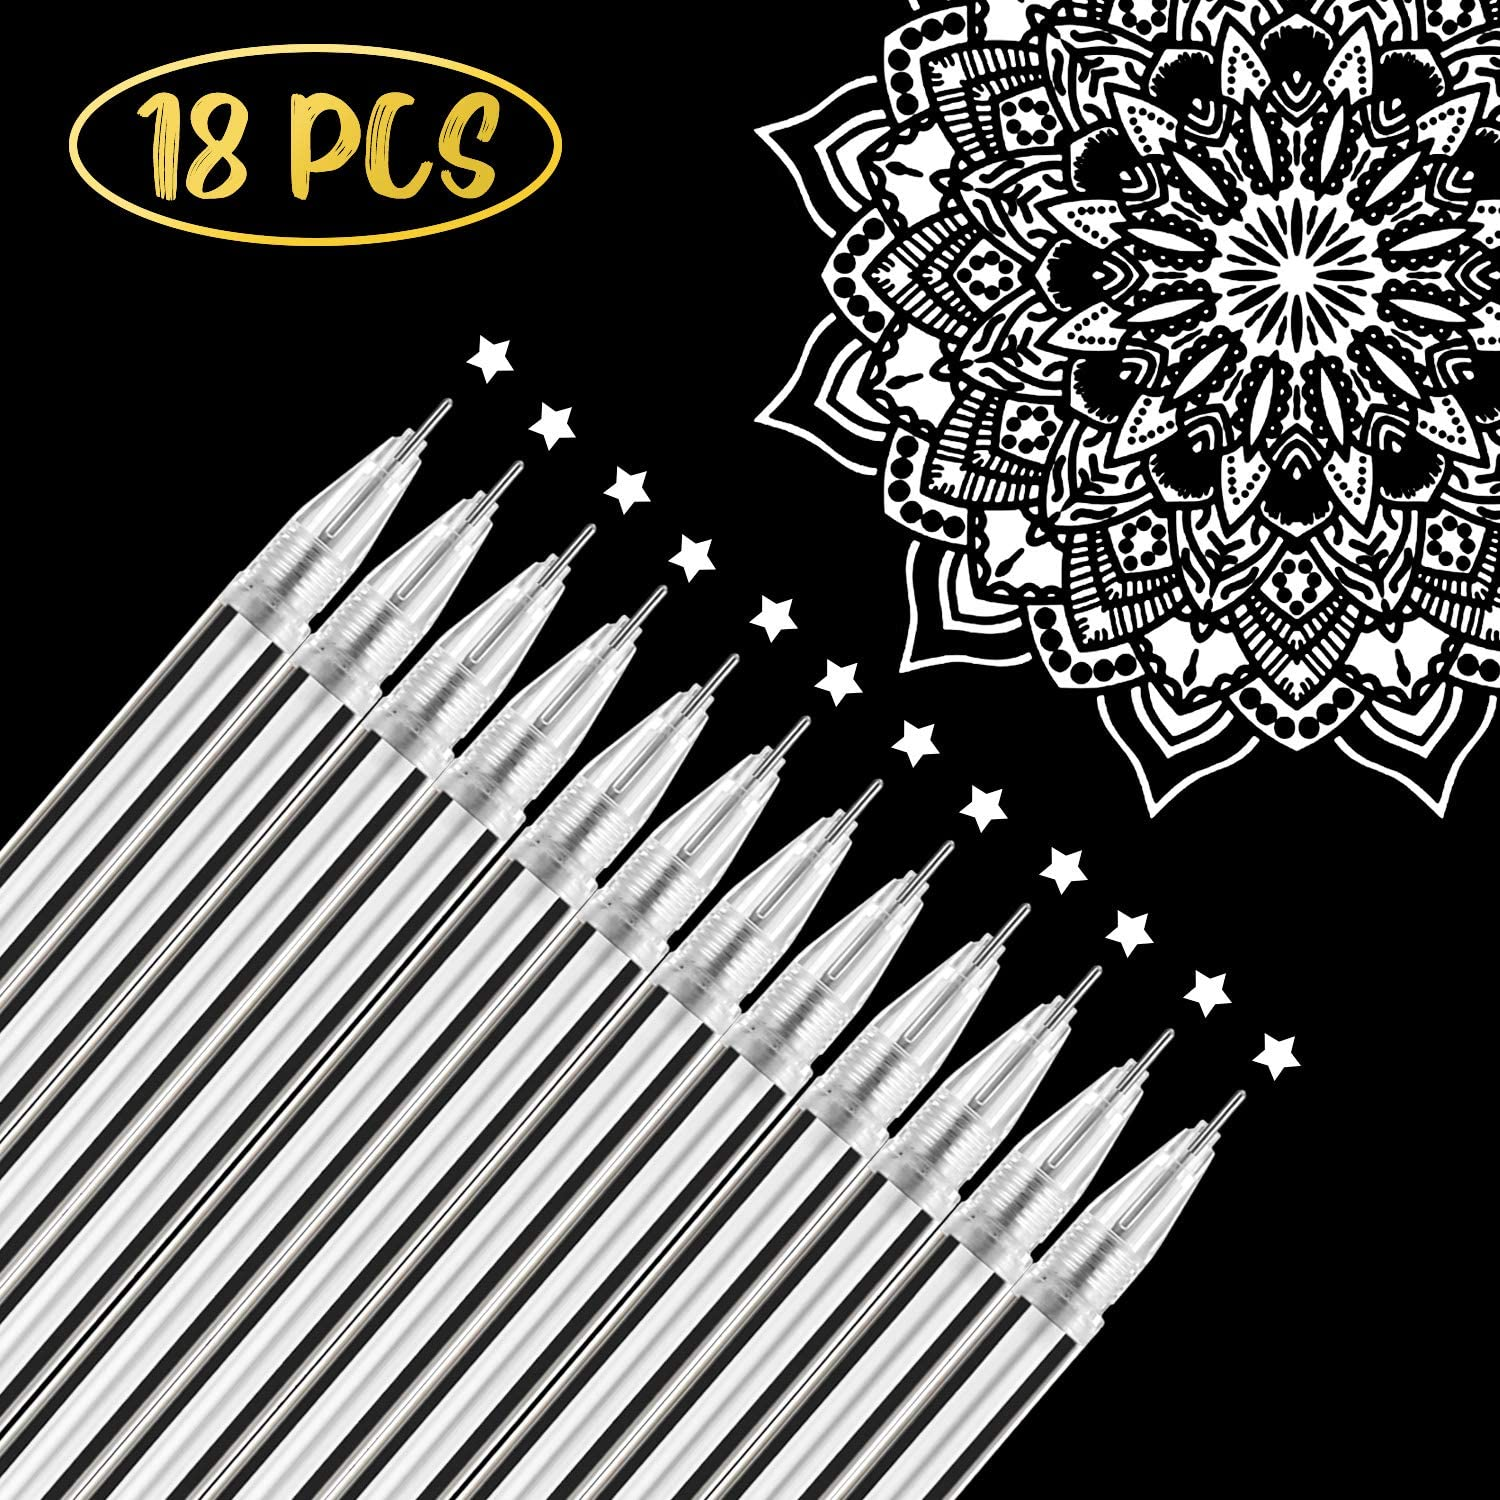 18 Pieces Gel Ink Pens Highlight Drawing Art Design Supplies 0.5 mm Pens for Black Paper Drawing Sketching Illustration Journaling Wedding Invitations and Adult Coloring Book (White)